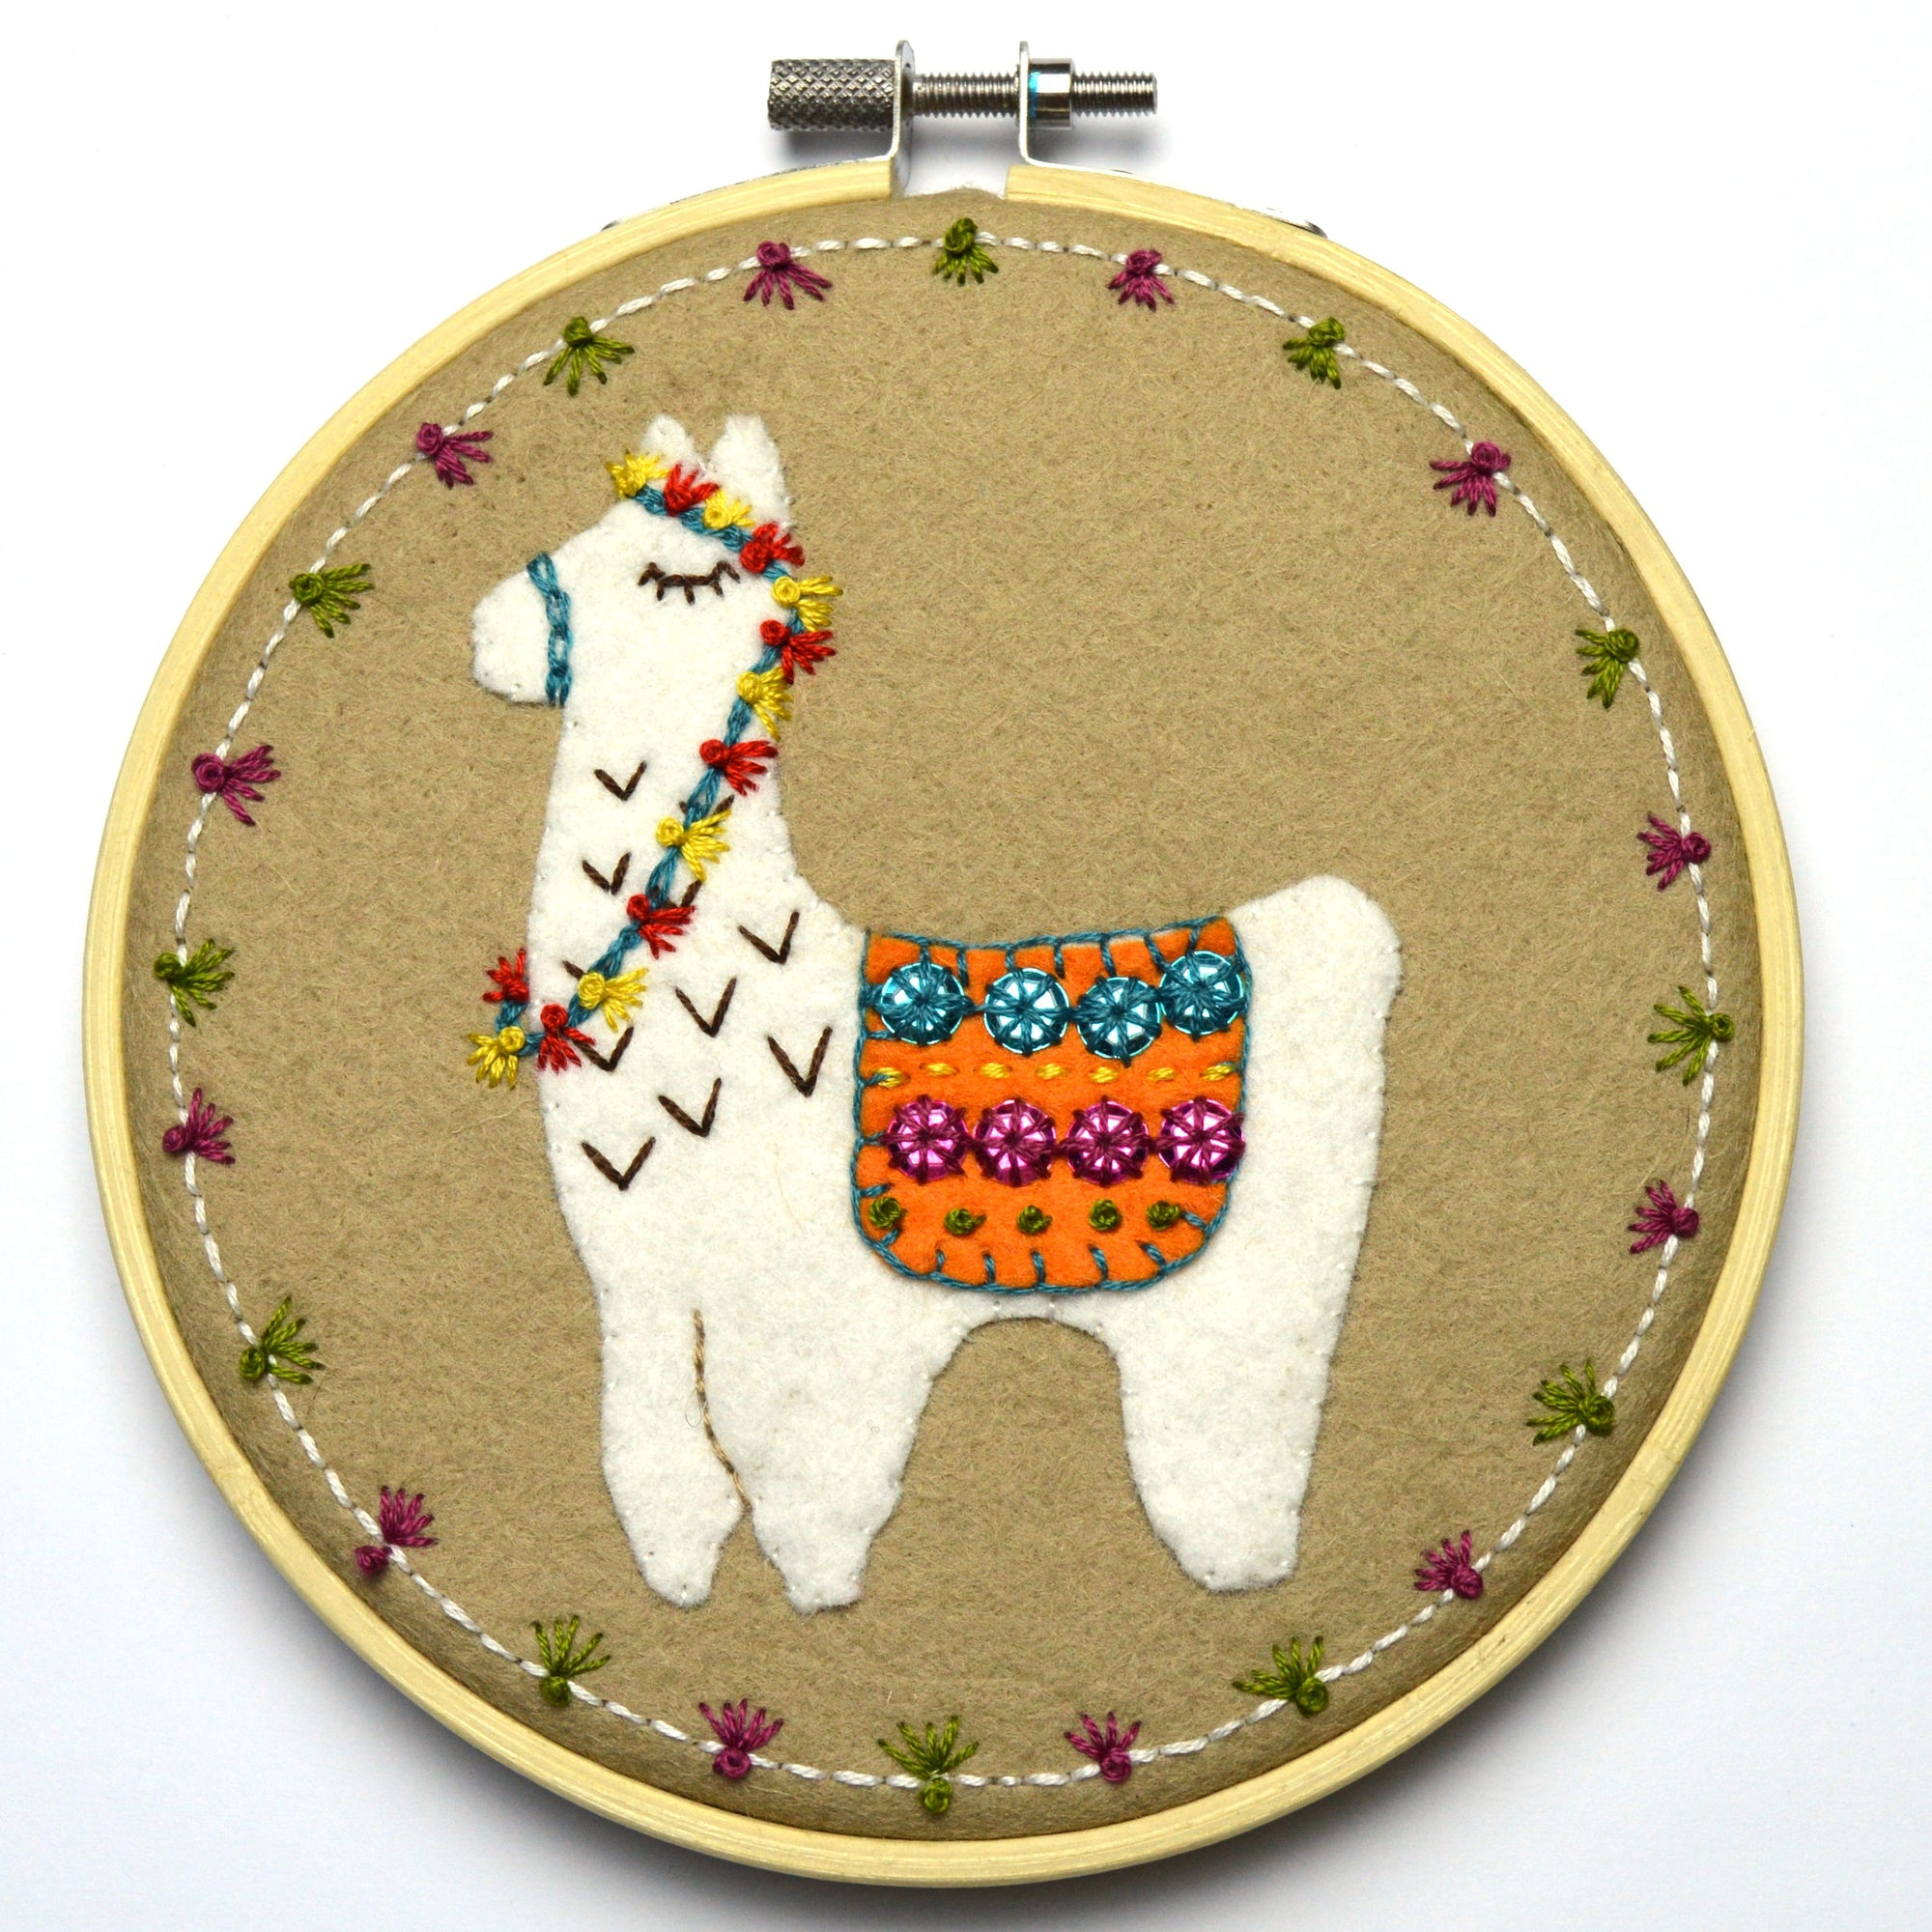 Corinne Lapierre Applique Hoop Sewing Kit - Llama